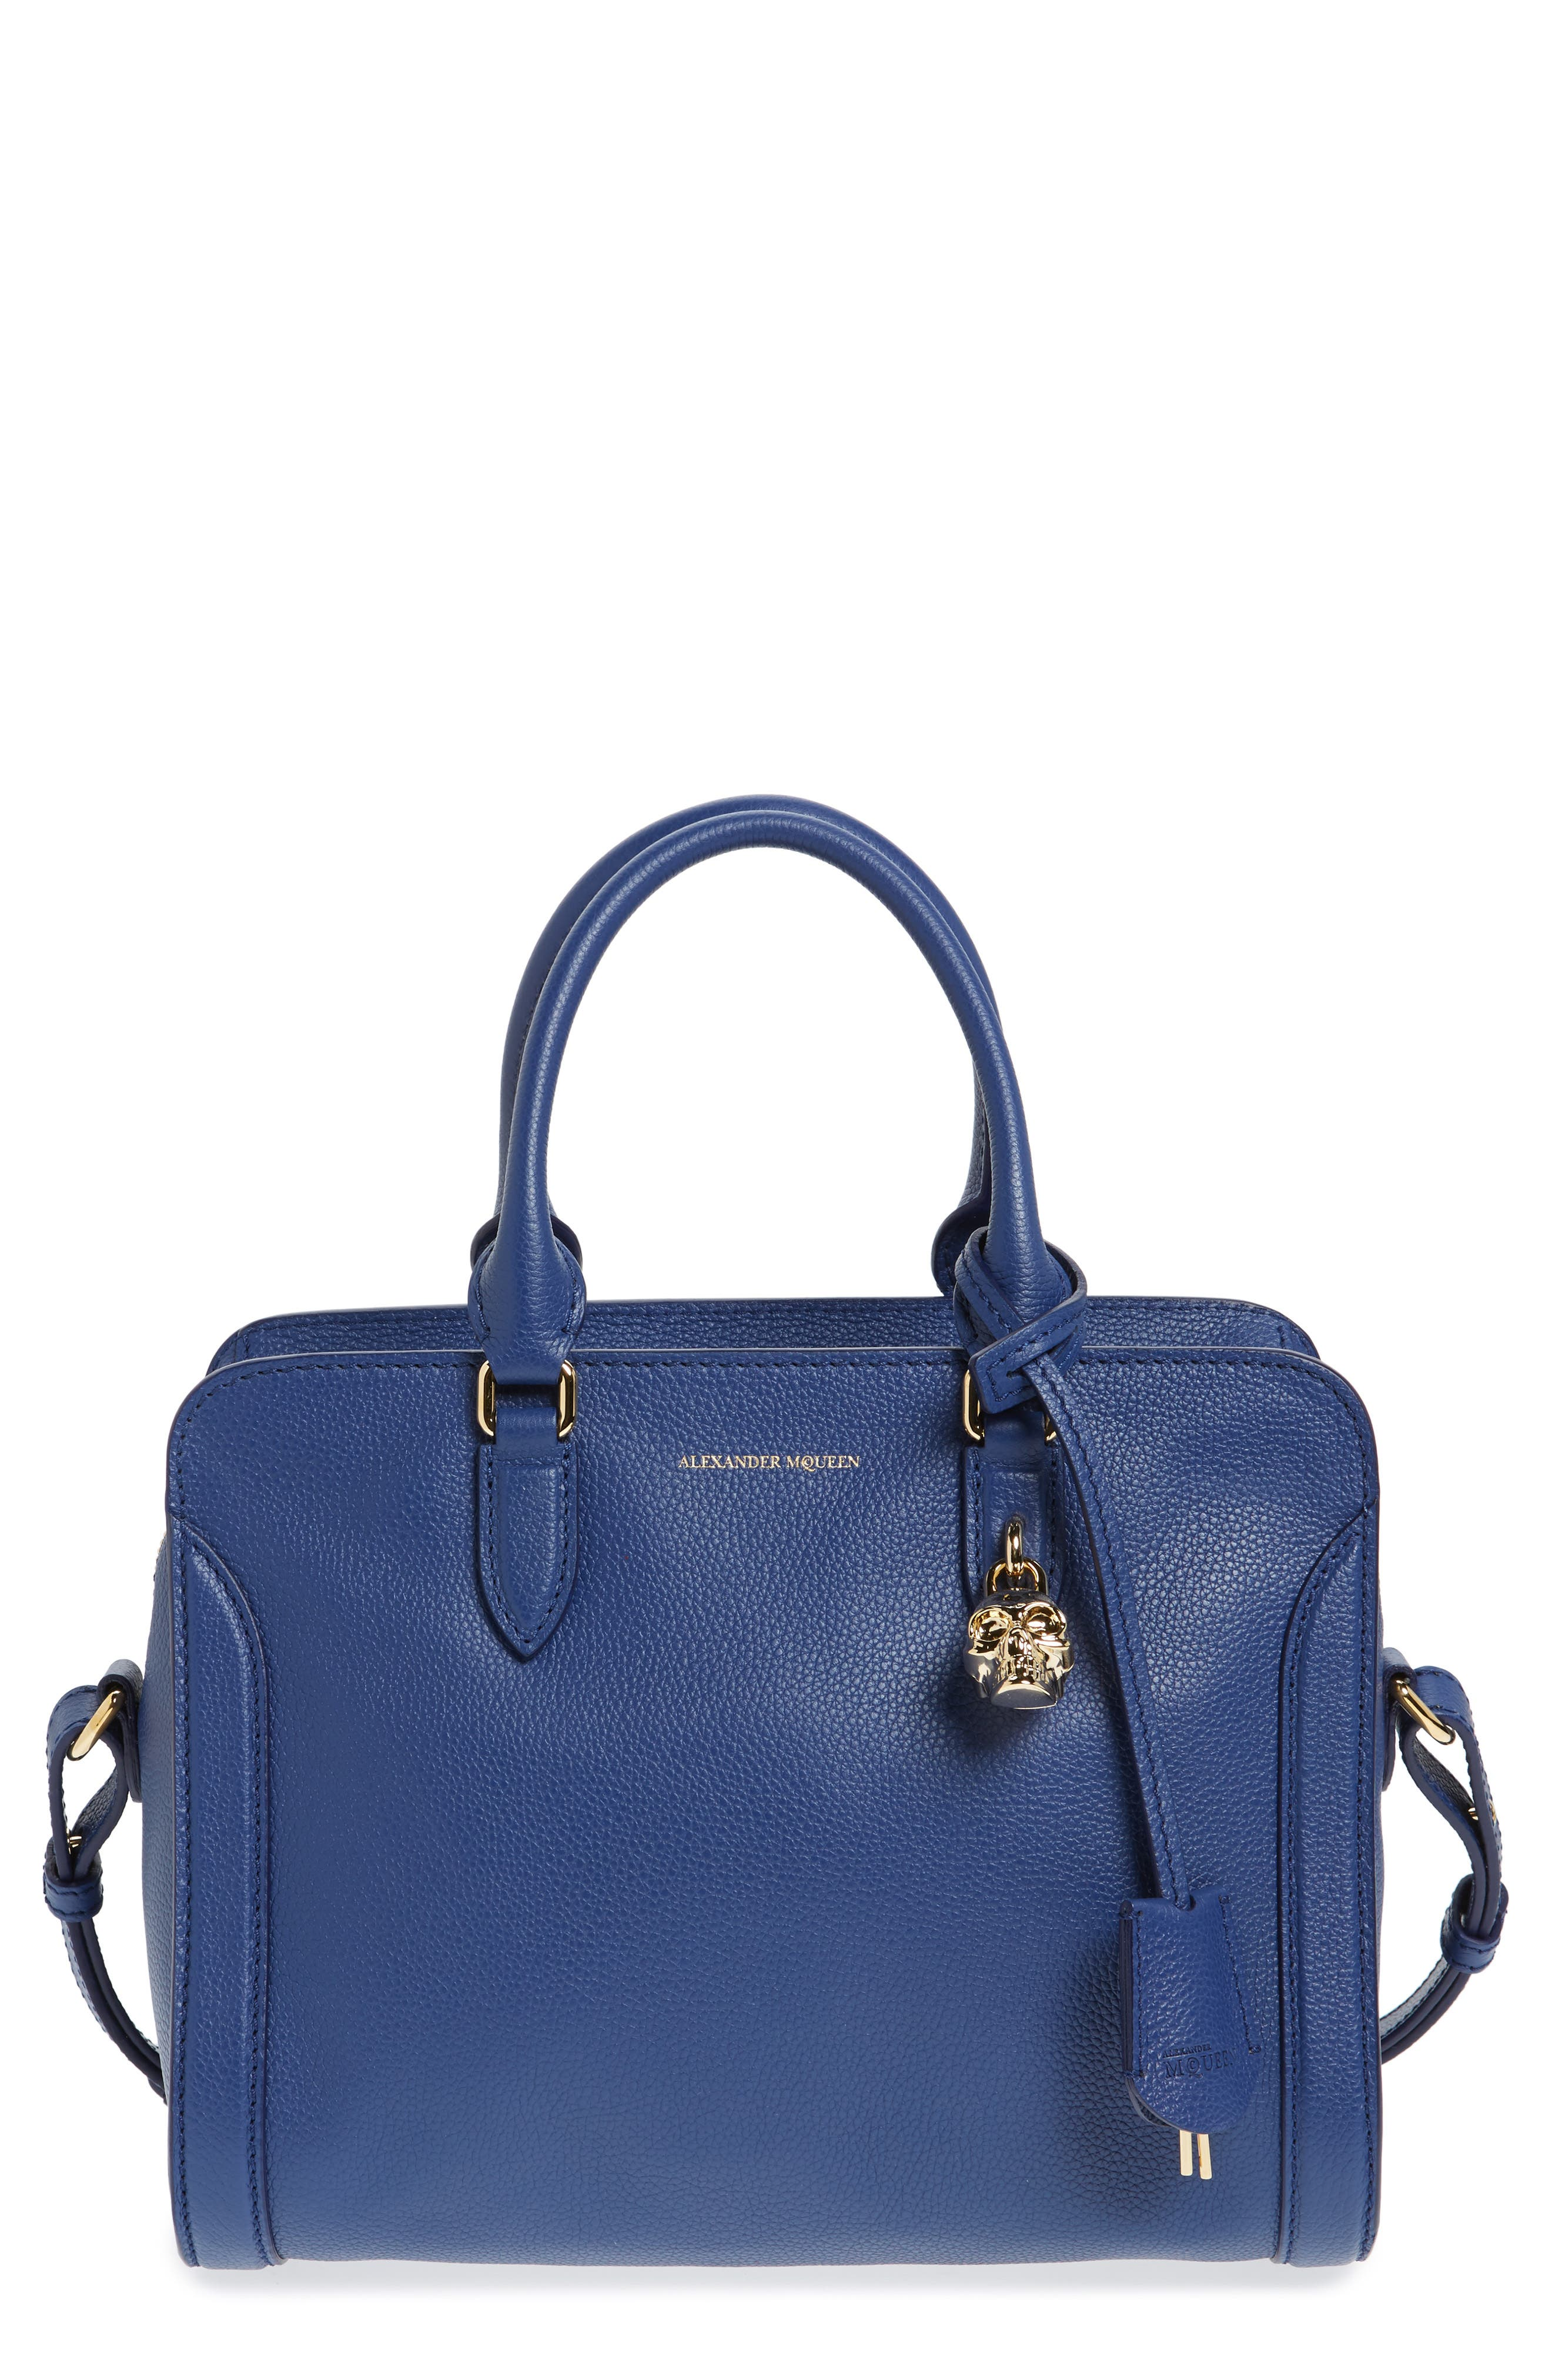 Main Image - Alexander McQueen 'Small Padlock' Calfskin Leather Duffel Bag